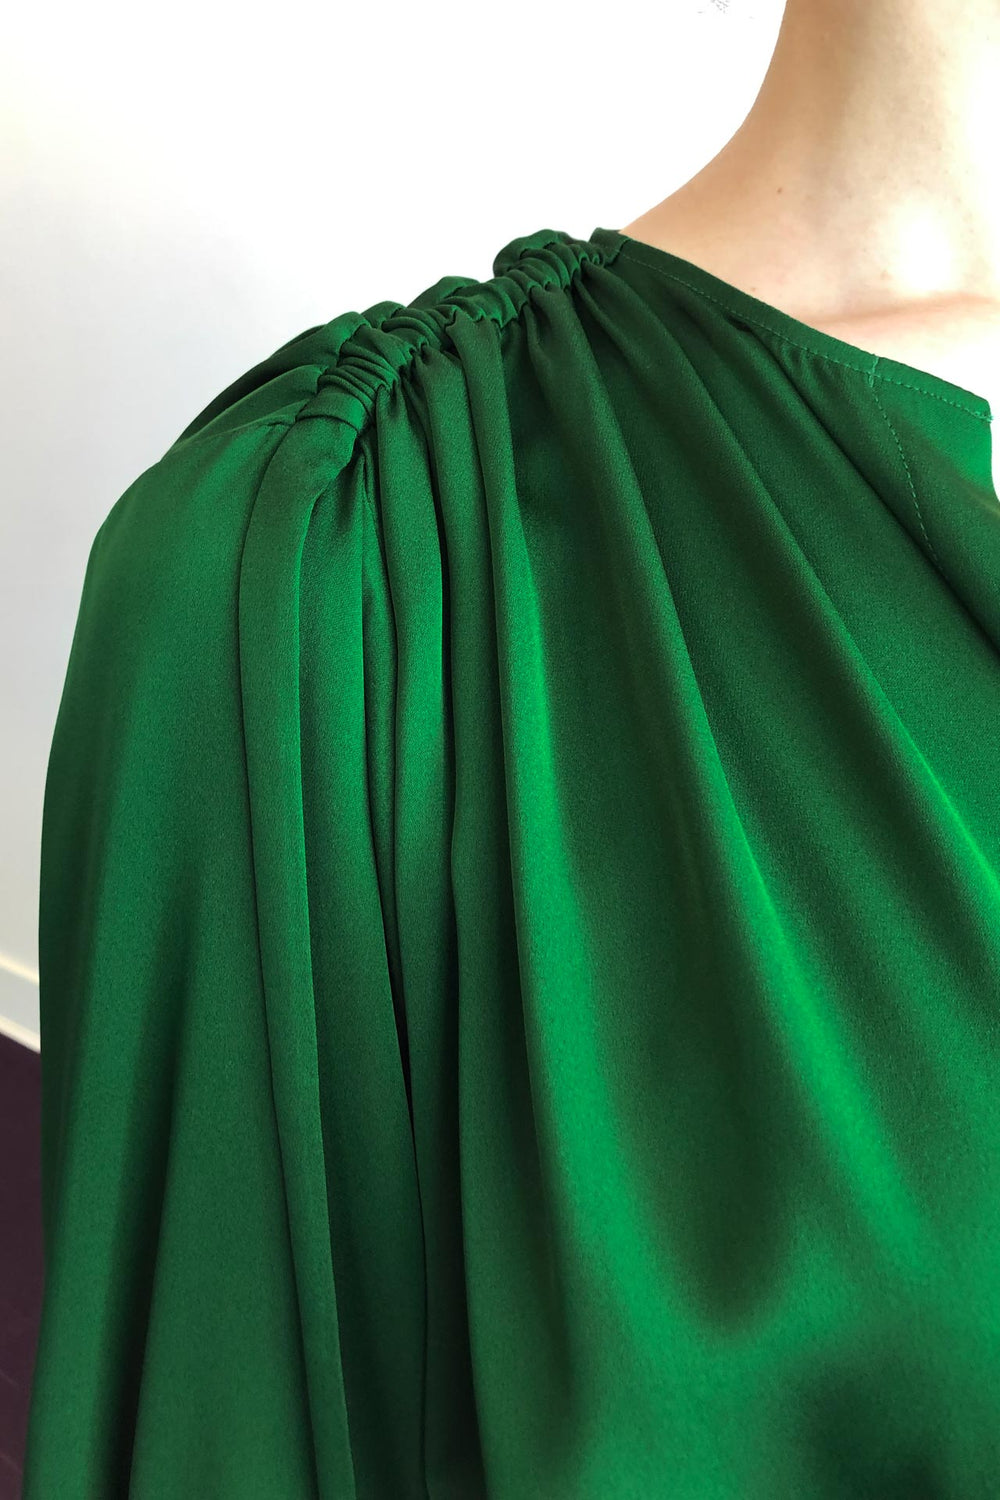 Fashion Designer CARL KAPP collection | Martini Onesize Fits All silk dress Emerald Green | Sydney Australia